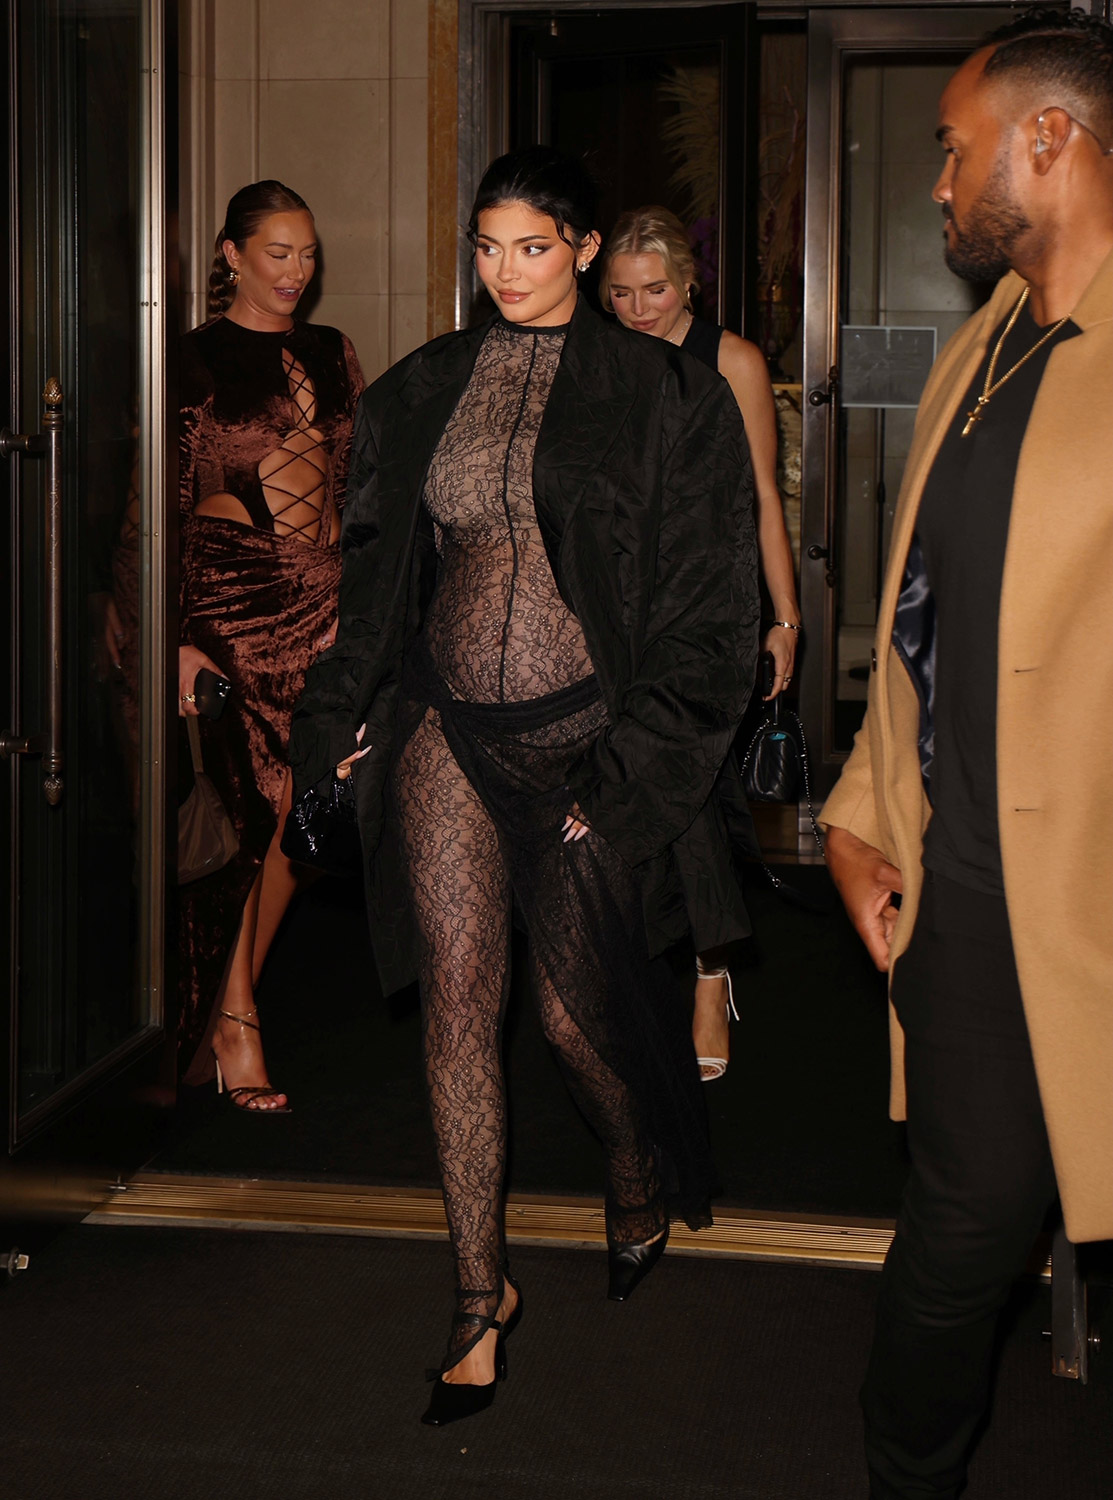 Pregnant Kylie Jenner shows off her belly in a sheer lace jumpsuit during NYFW